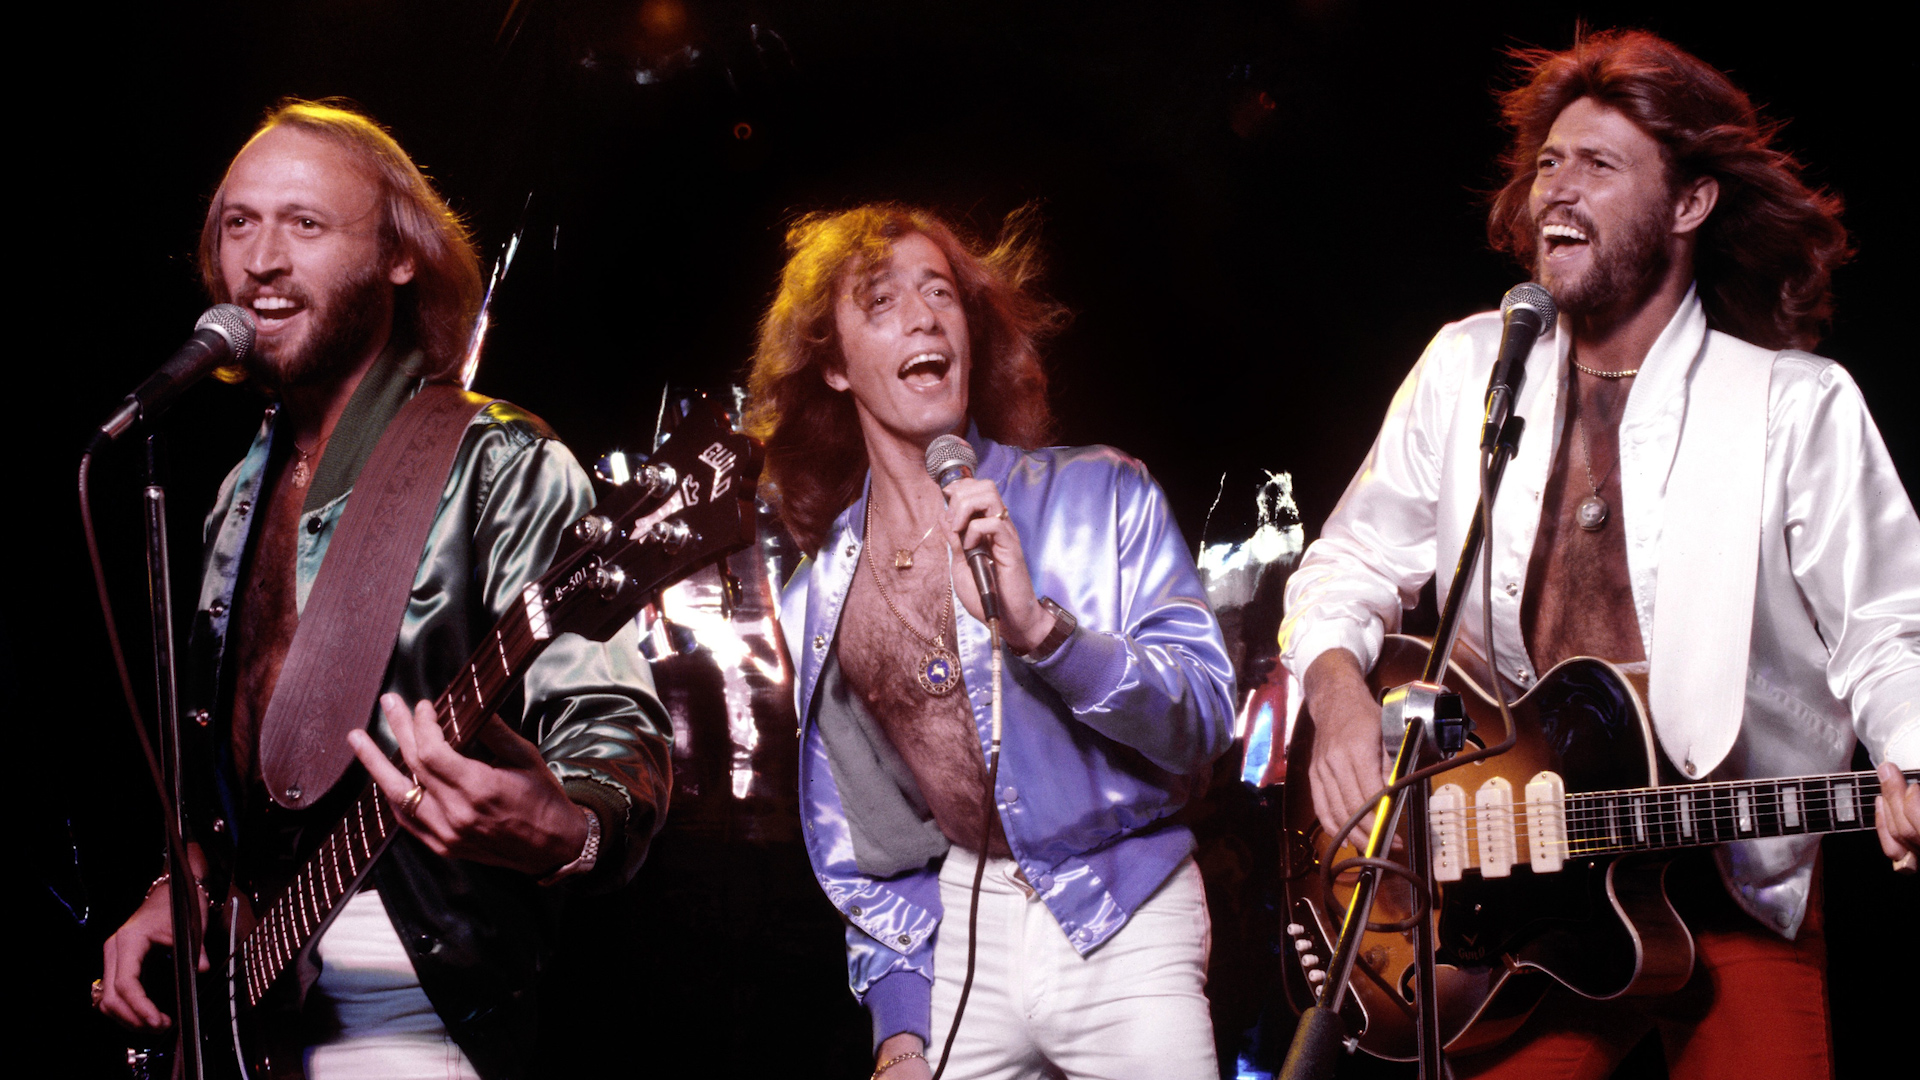 Frank Marshall on His Bee Gees Doc 'How Can You Mend a Broken Heart' -  Variety